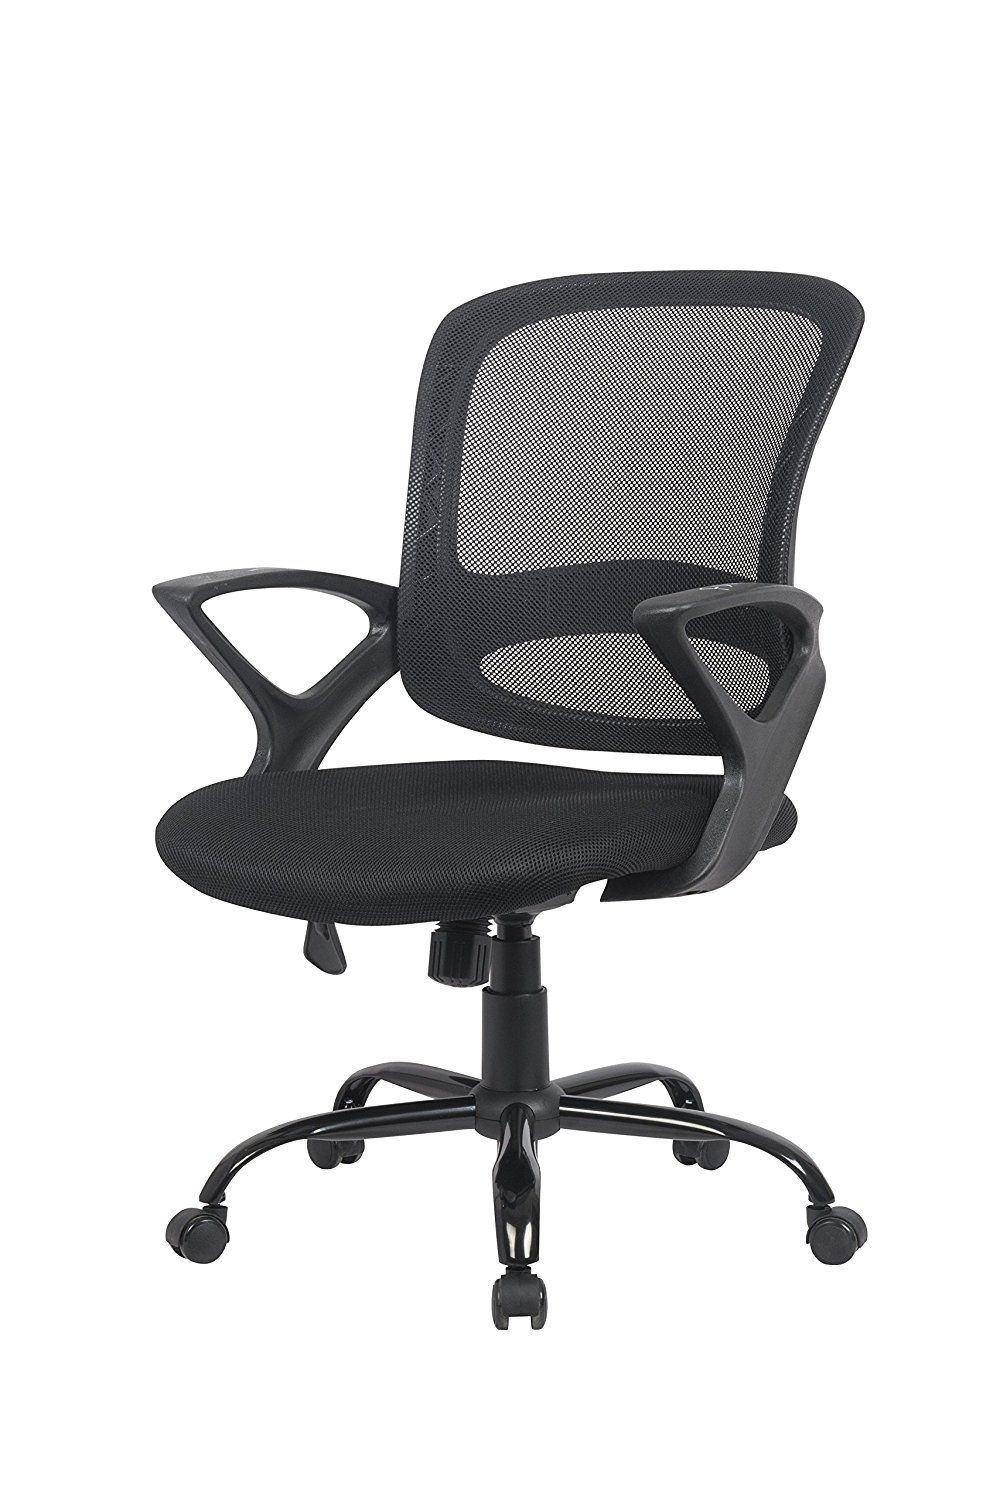 Pin By Five Stars On Desk Chairs Under 50 Chair Best Office Chair Desk Chair